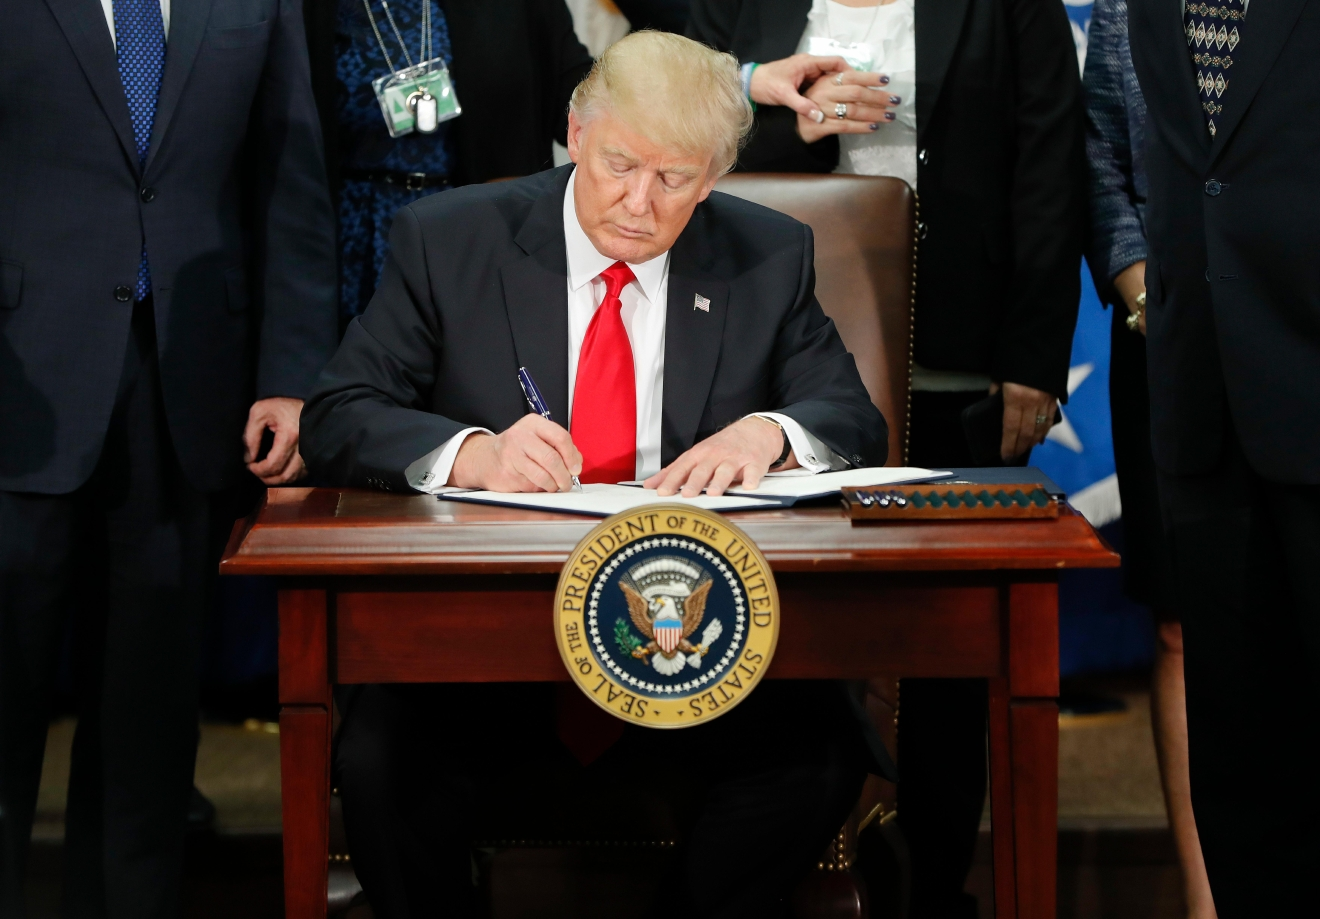 President Donald Trump signs an executive order for border security and immigration enforcement improvements, Wednesday, Jan. 25, 2017, at the Homeland Security Department in Washington.  (Photo credit: AP Photo/Pablo Martinez Monsivais)